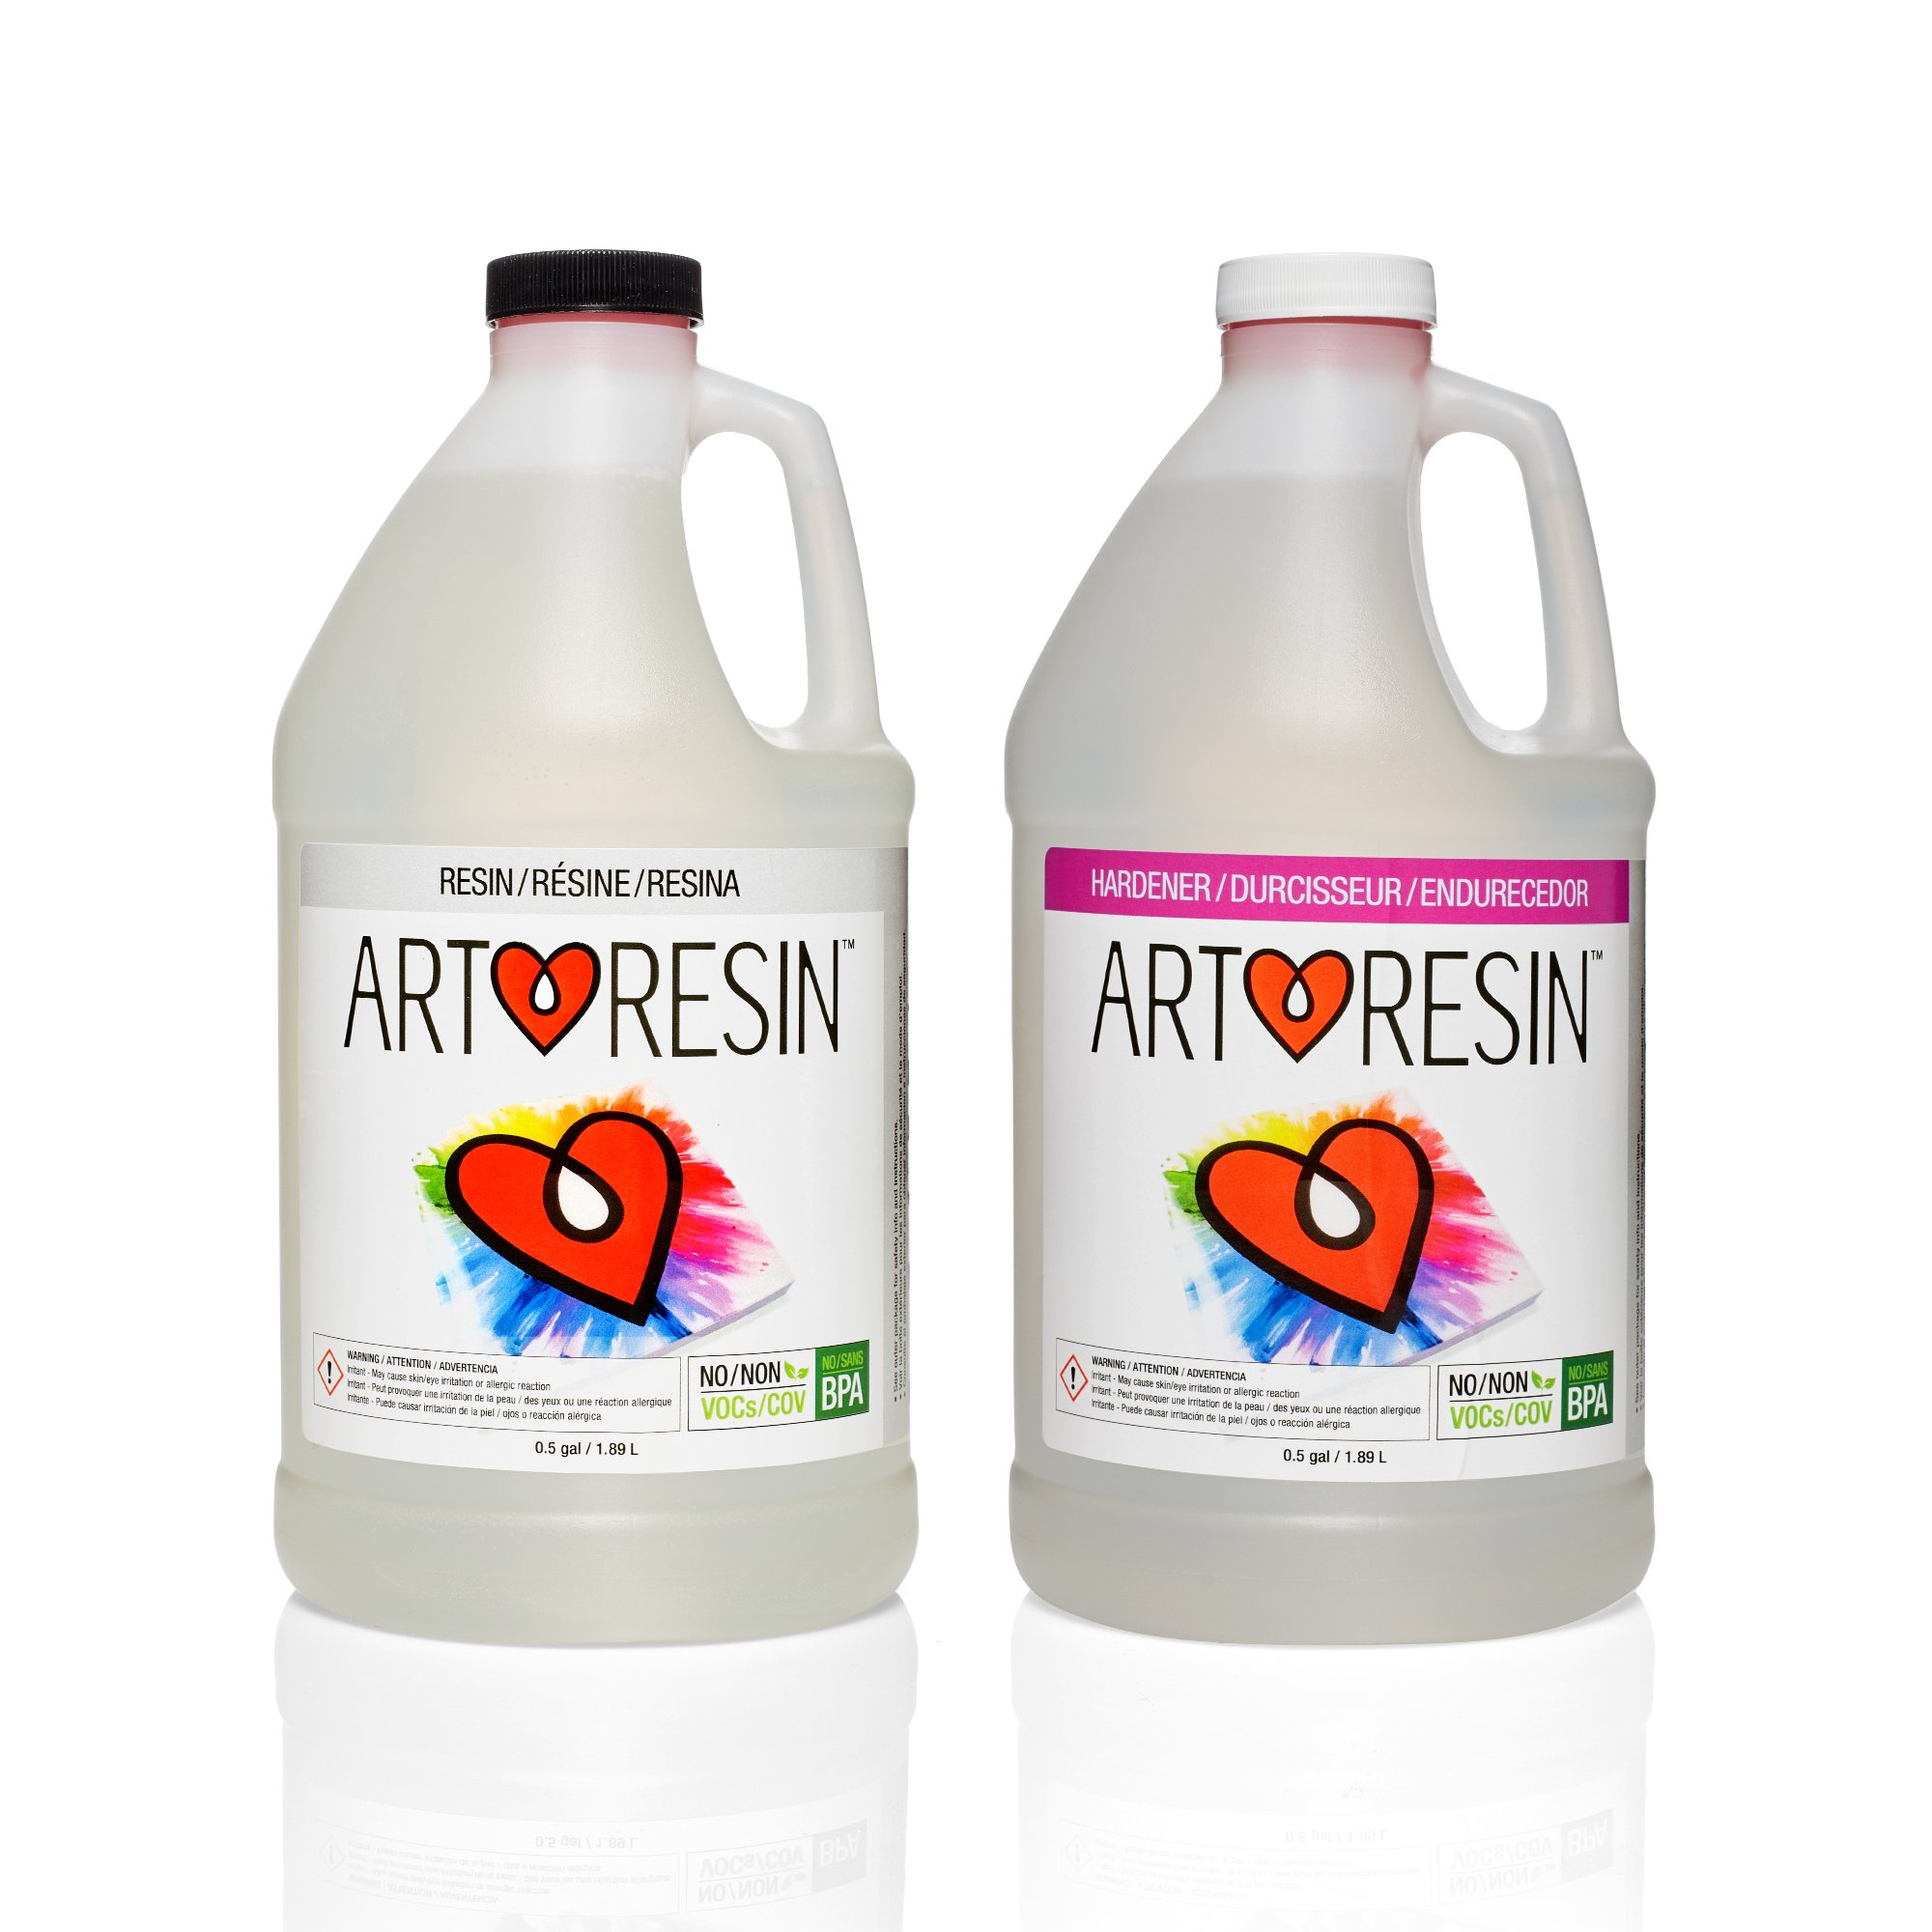 ArtResin - Epoxy Resin - Clear - Non-Toxic - 1 gal (3.78 L) by ArtResin